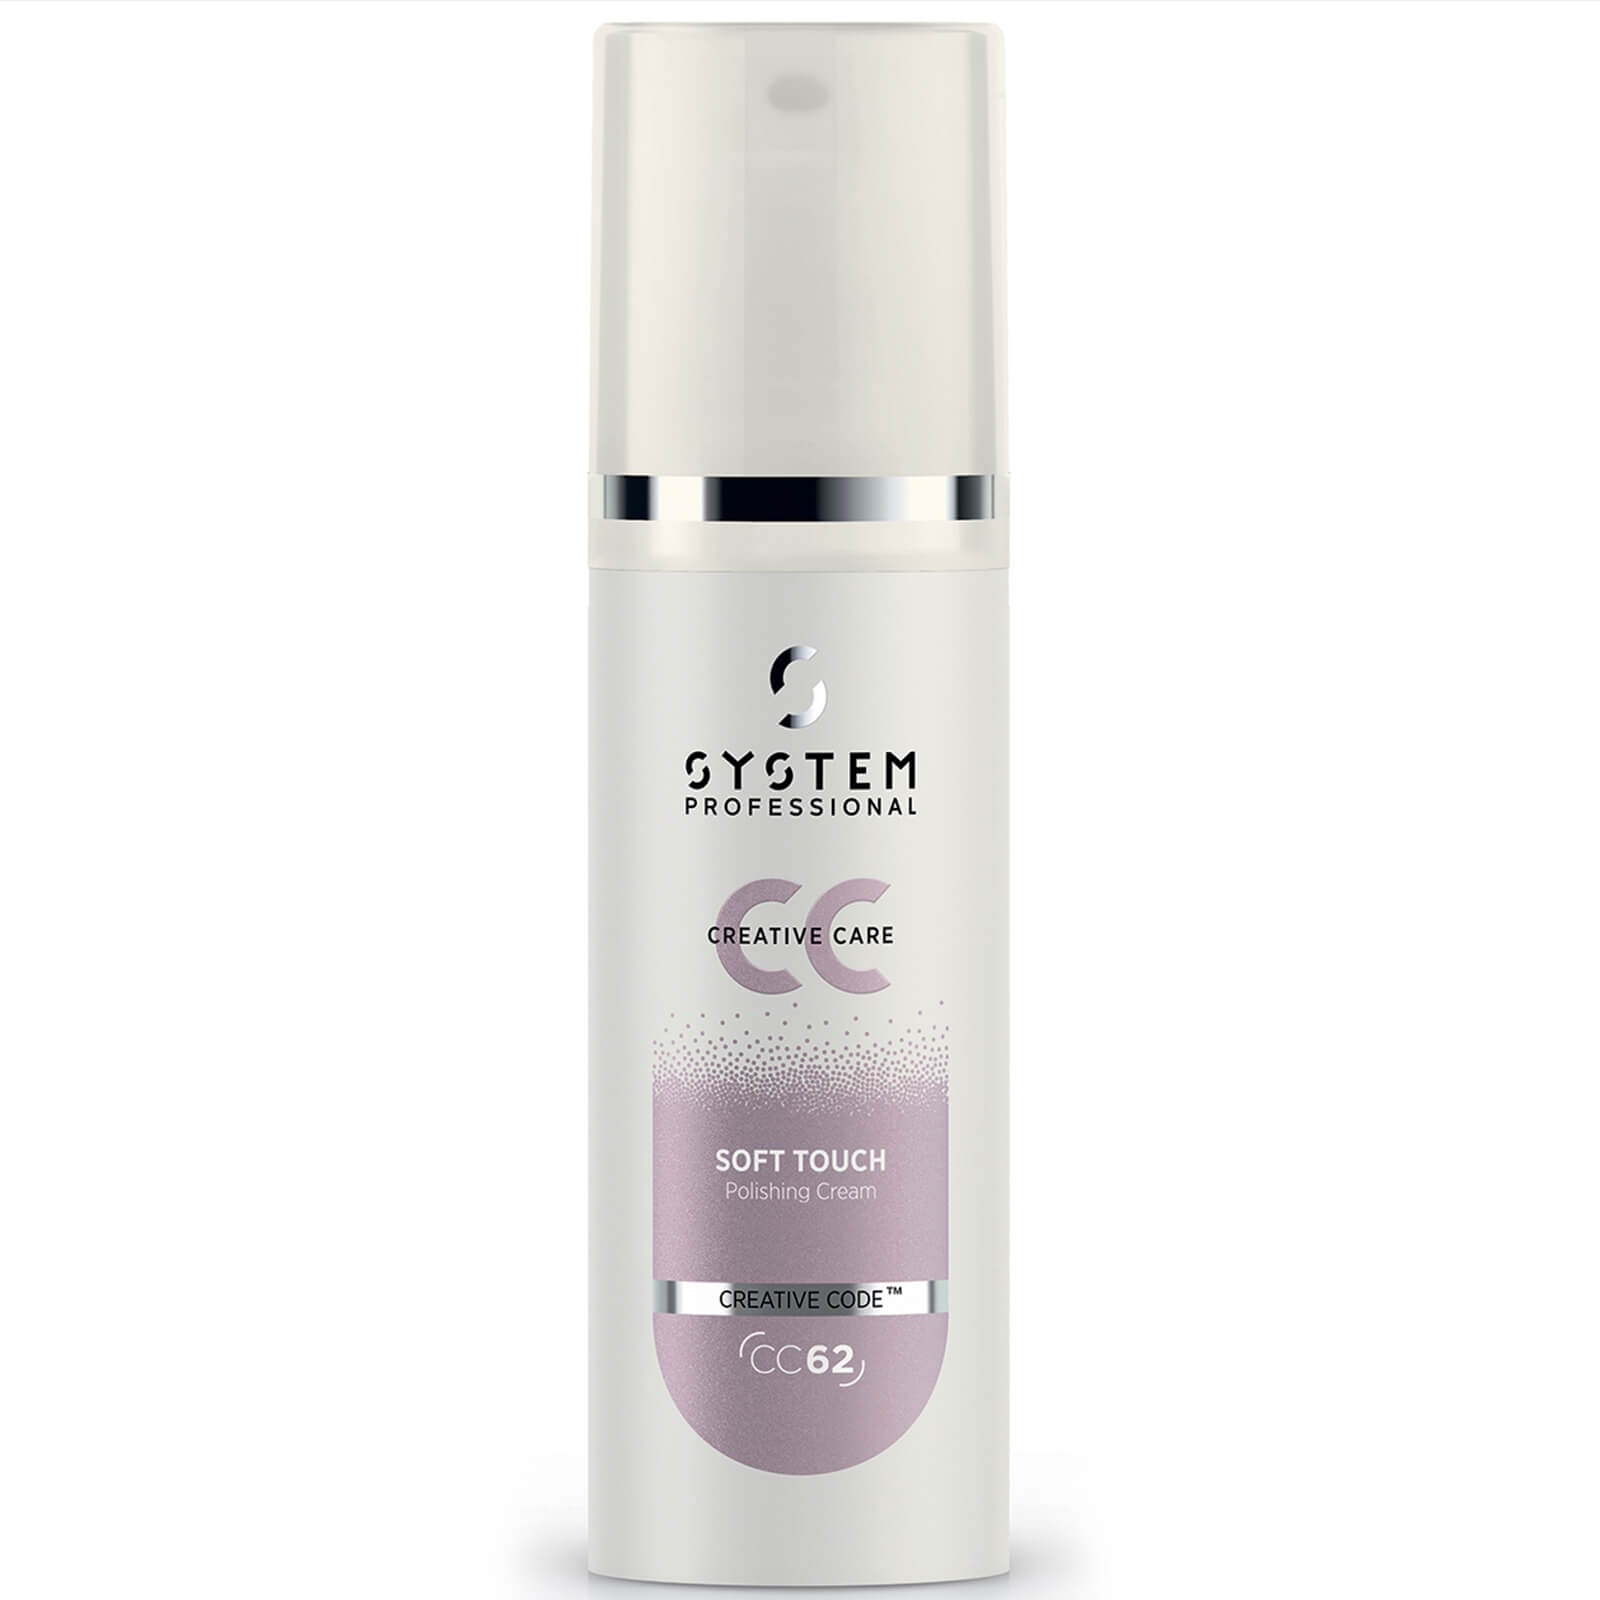 82e7d35c1e System Professional CC Soft Touch Cream 75ml | Free Shipping | Lookfantastic